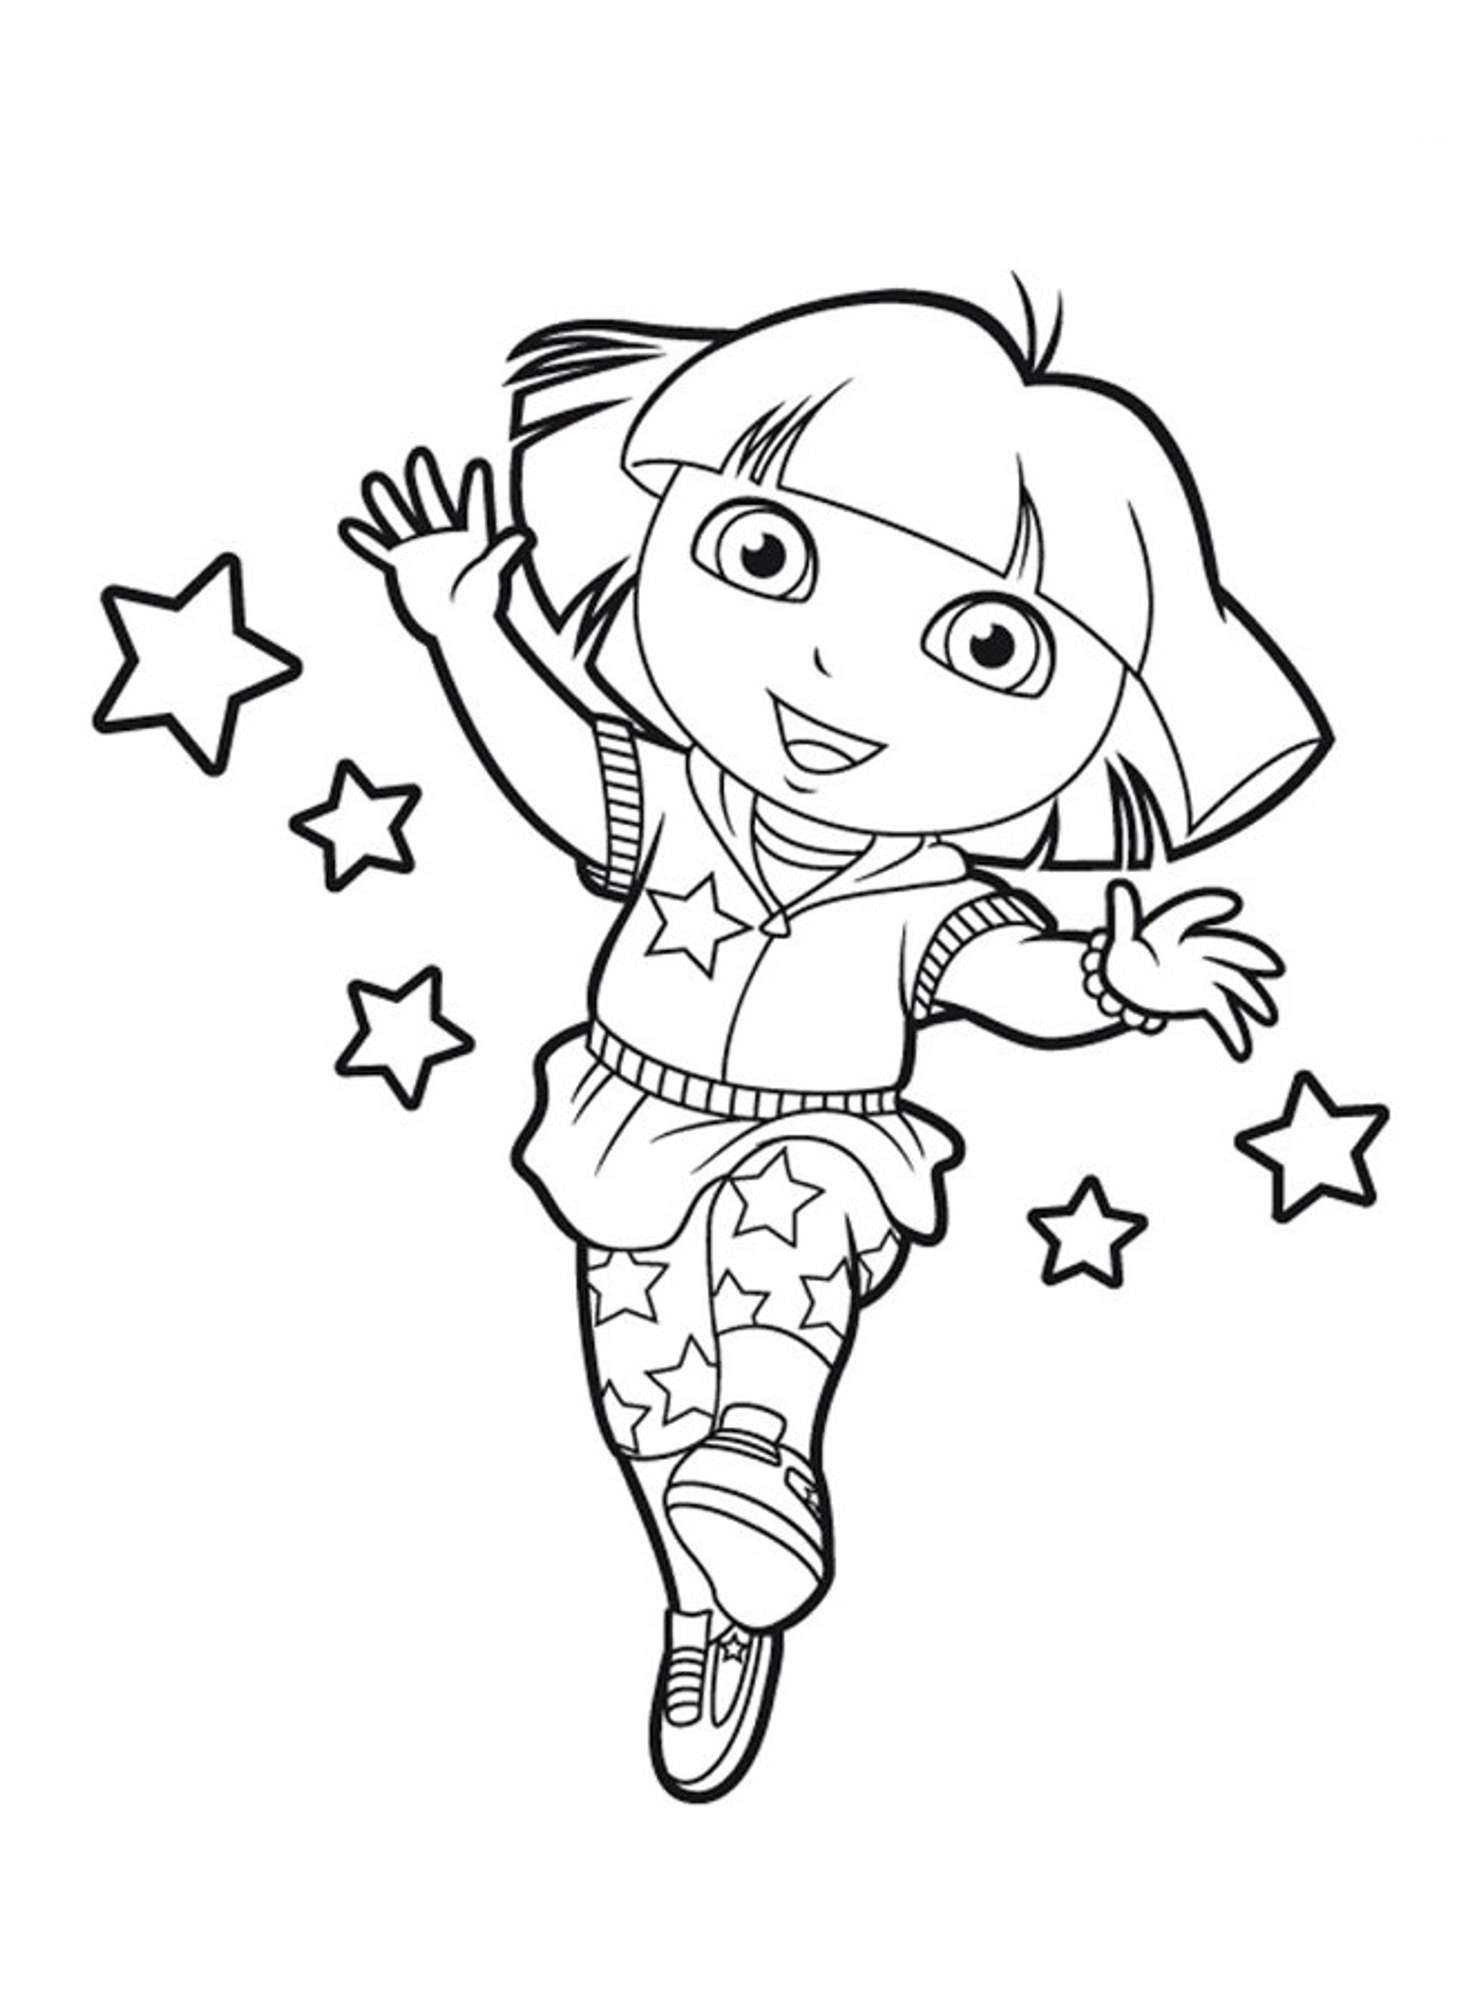 Coloriages dora imprimer backupyourbrain - Coloriage imprime ...